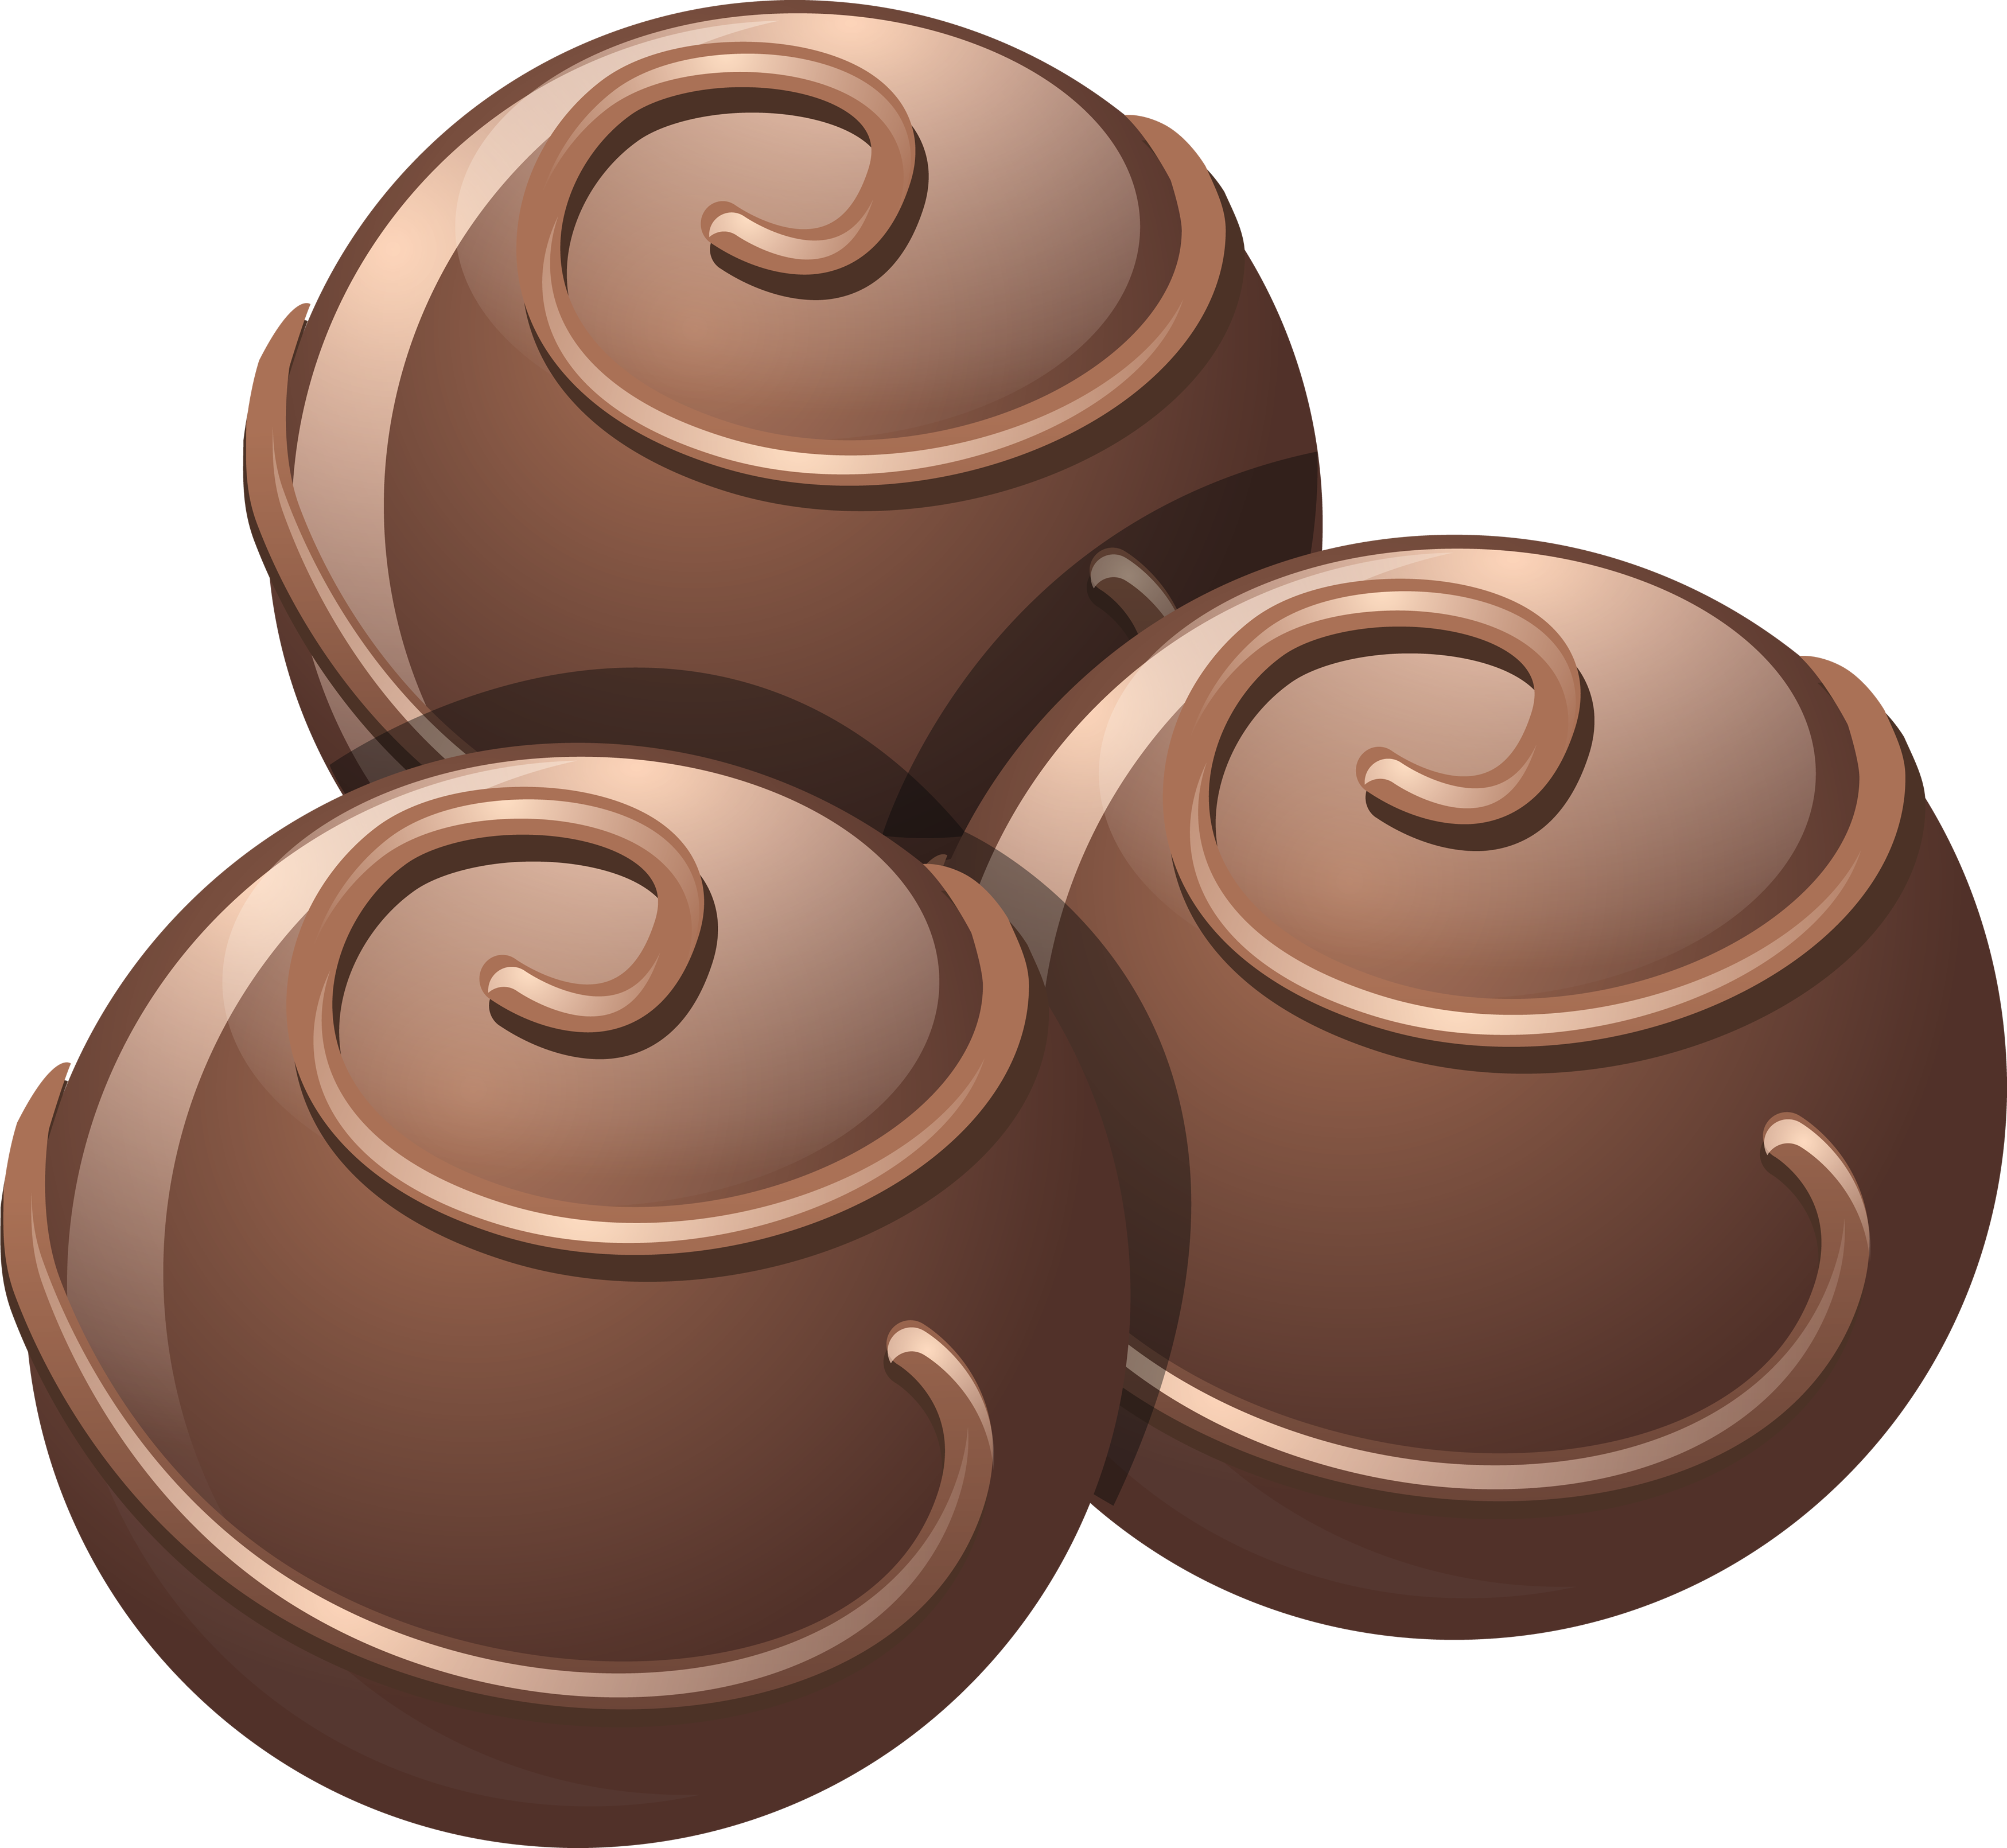 Dark Chocolate Scoops PNG Image